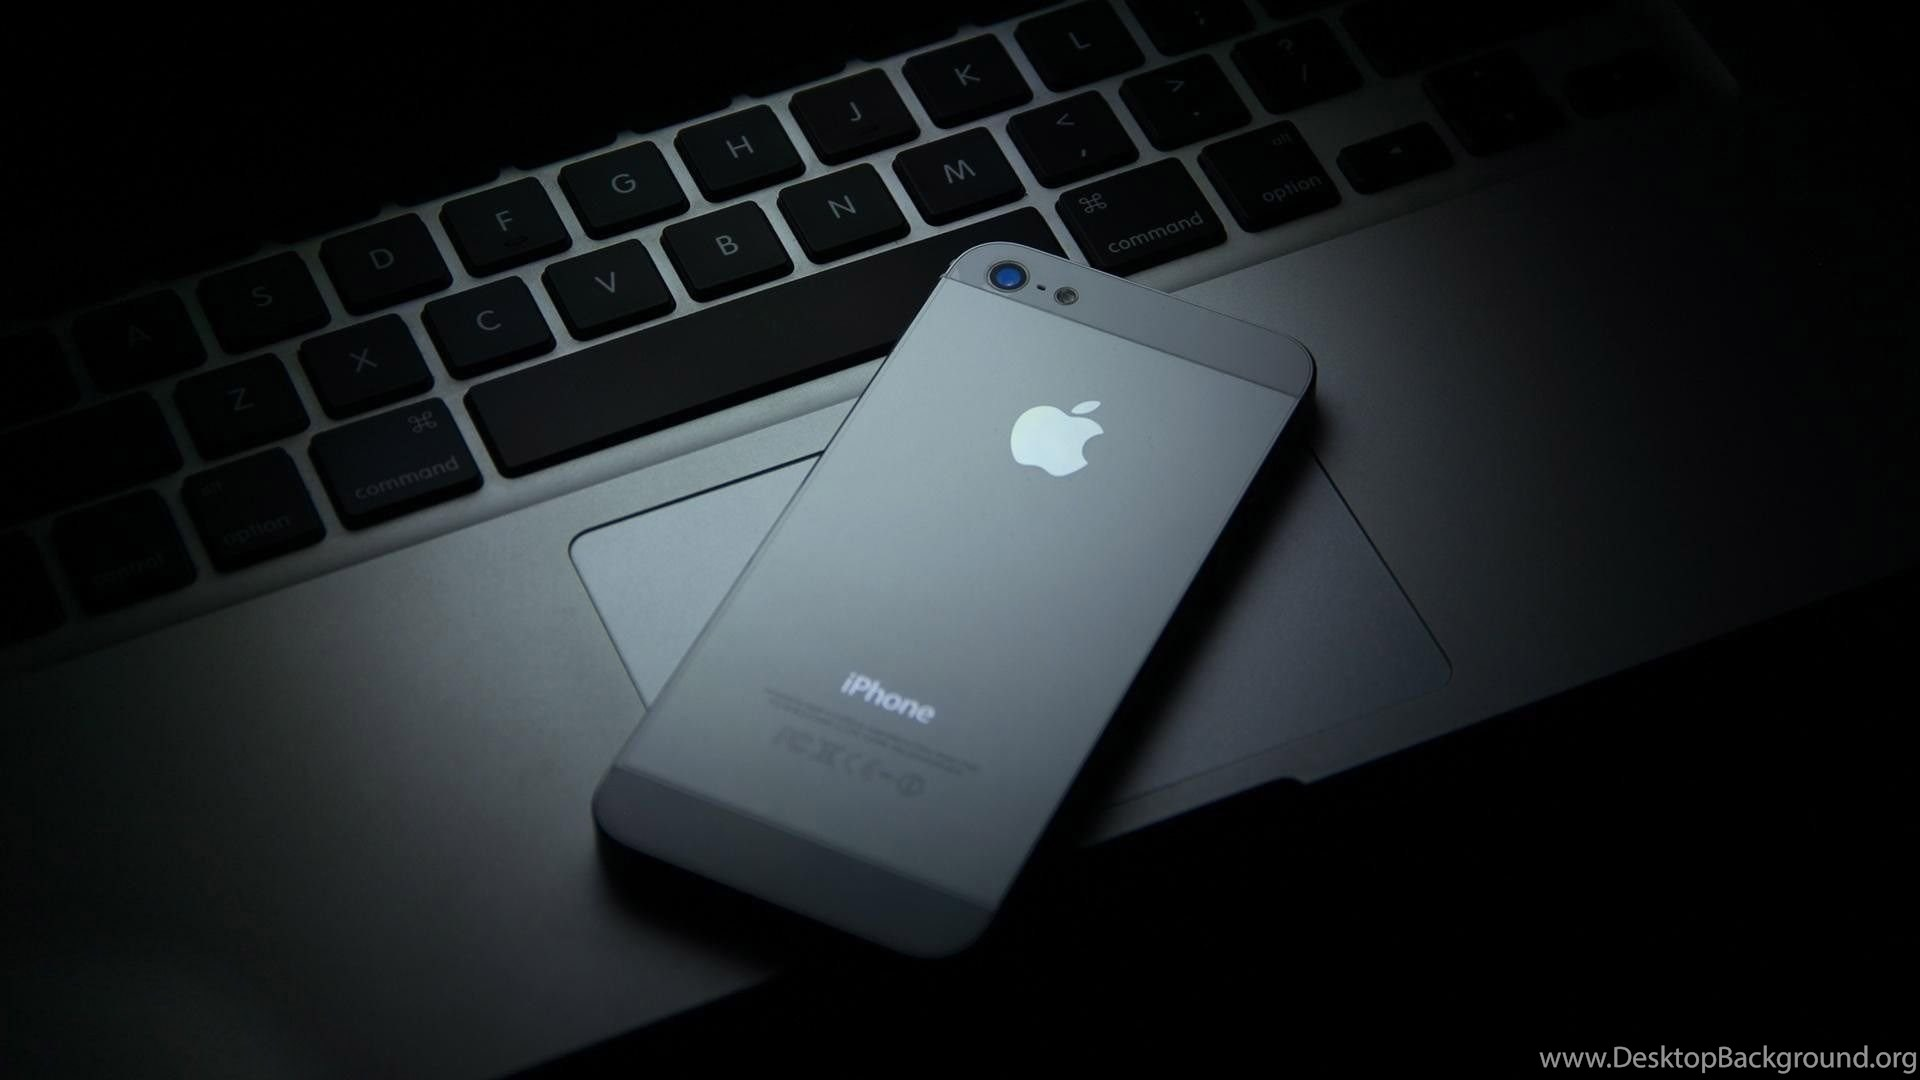 apple iphone 5s black hd wallpaperwelcome to starchop desktop background